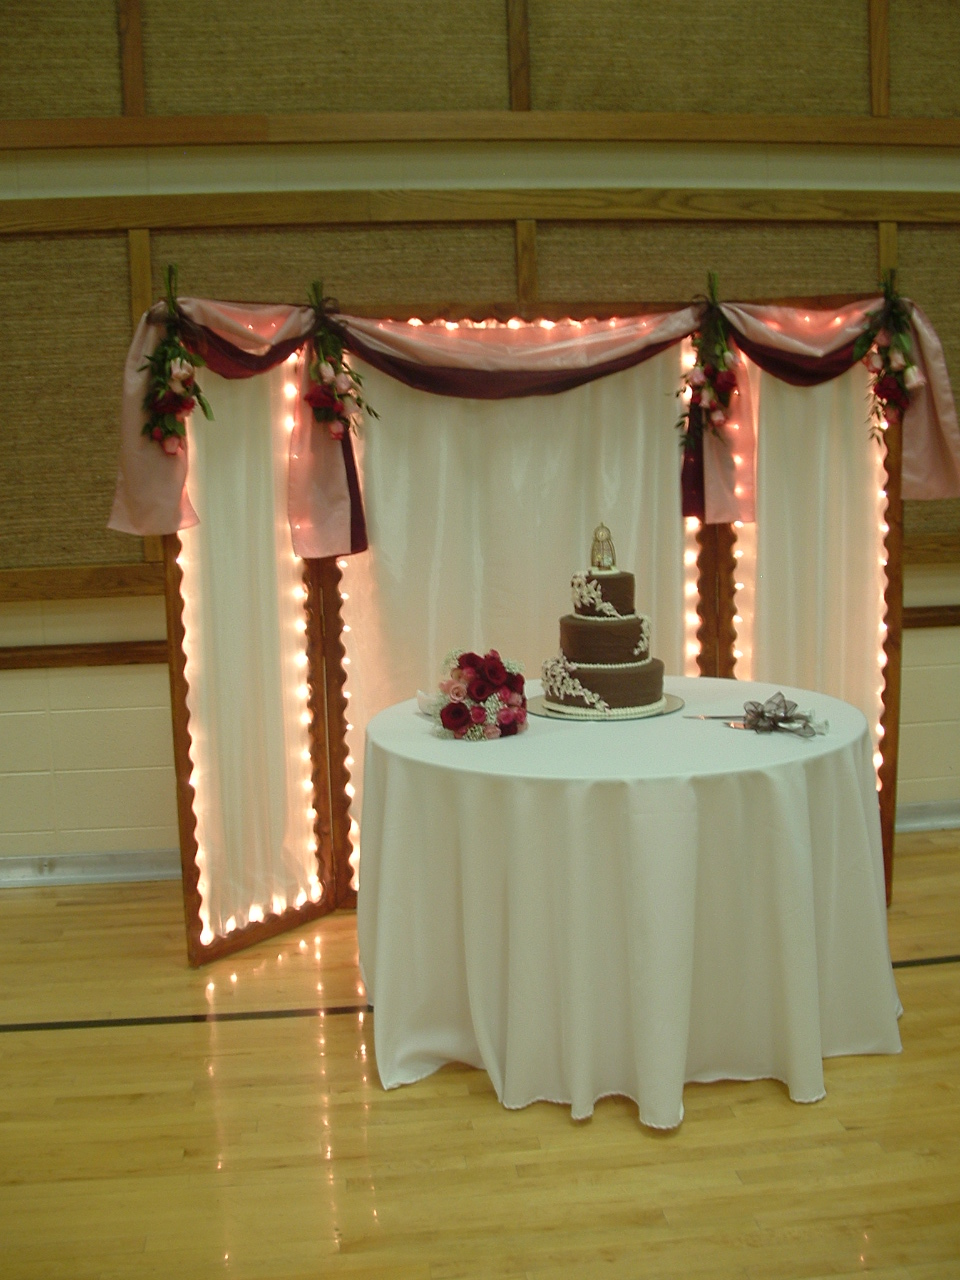 the wedding cake backdrop